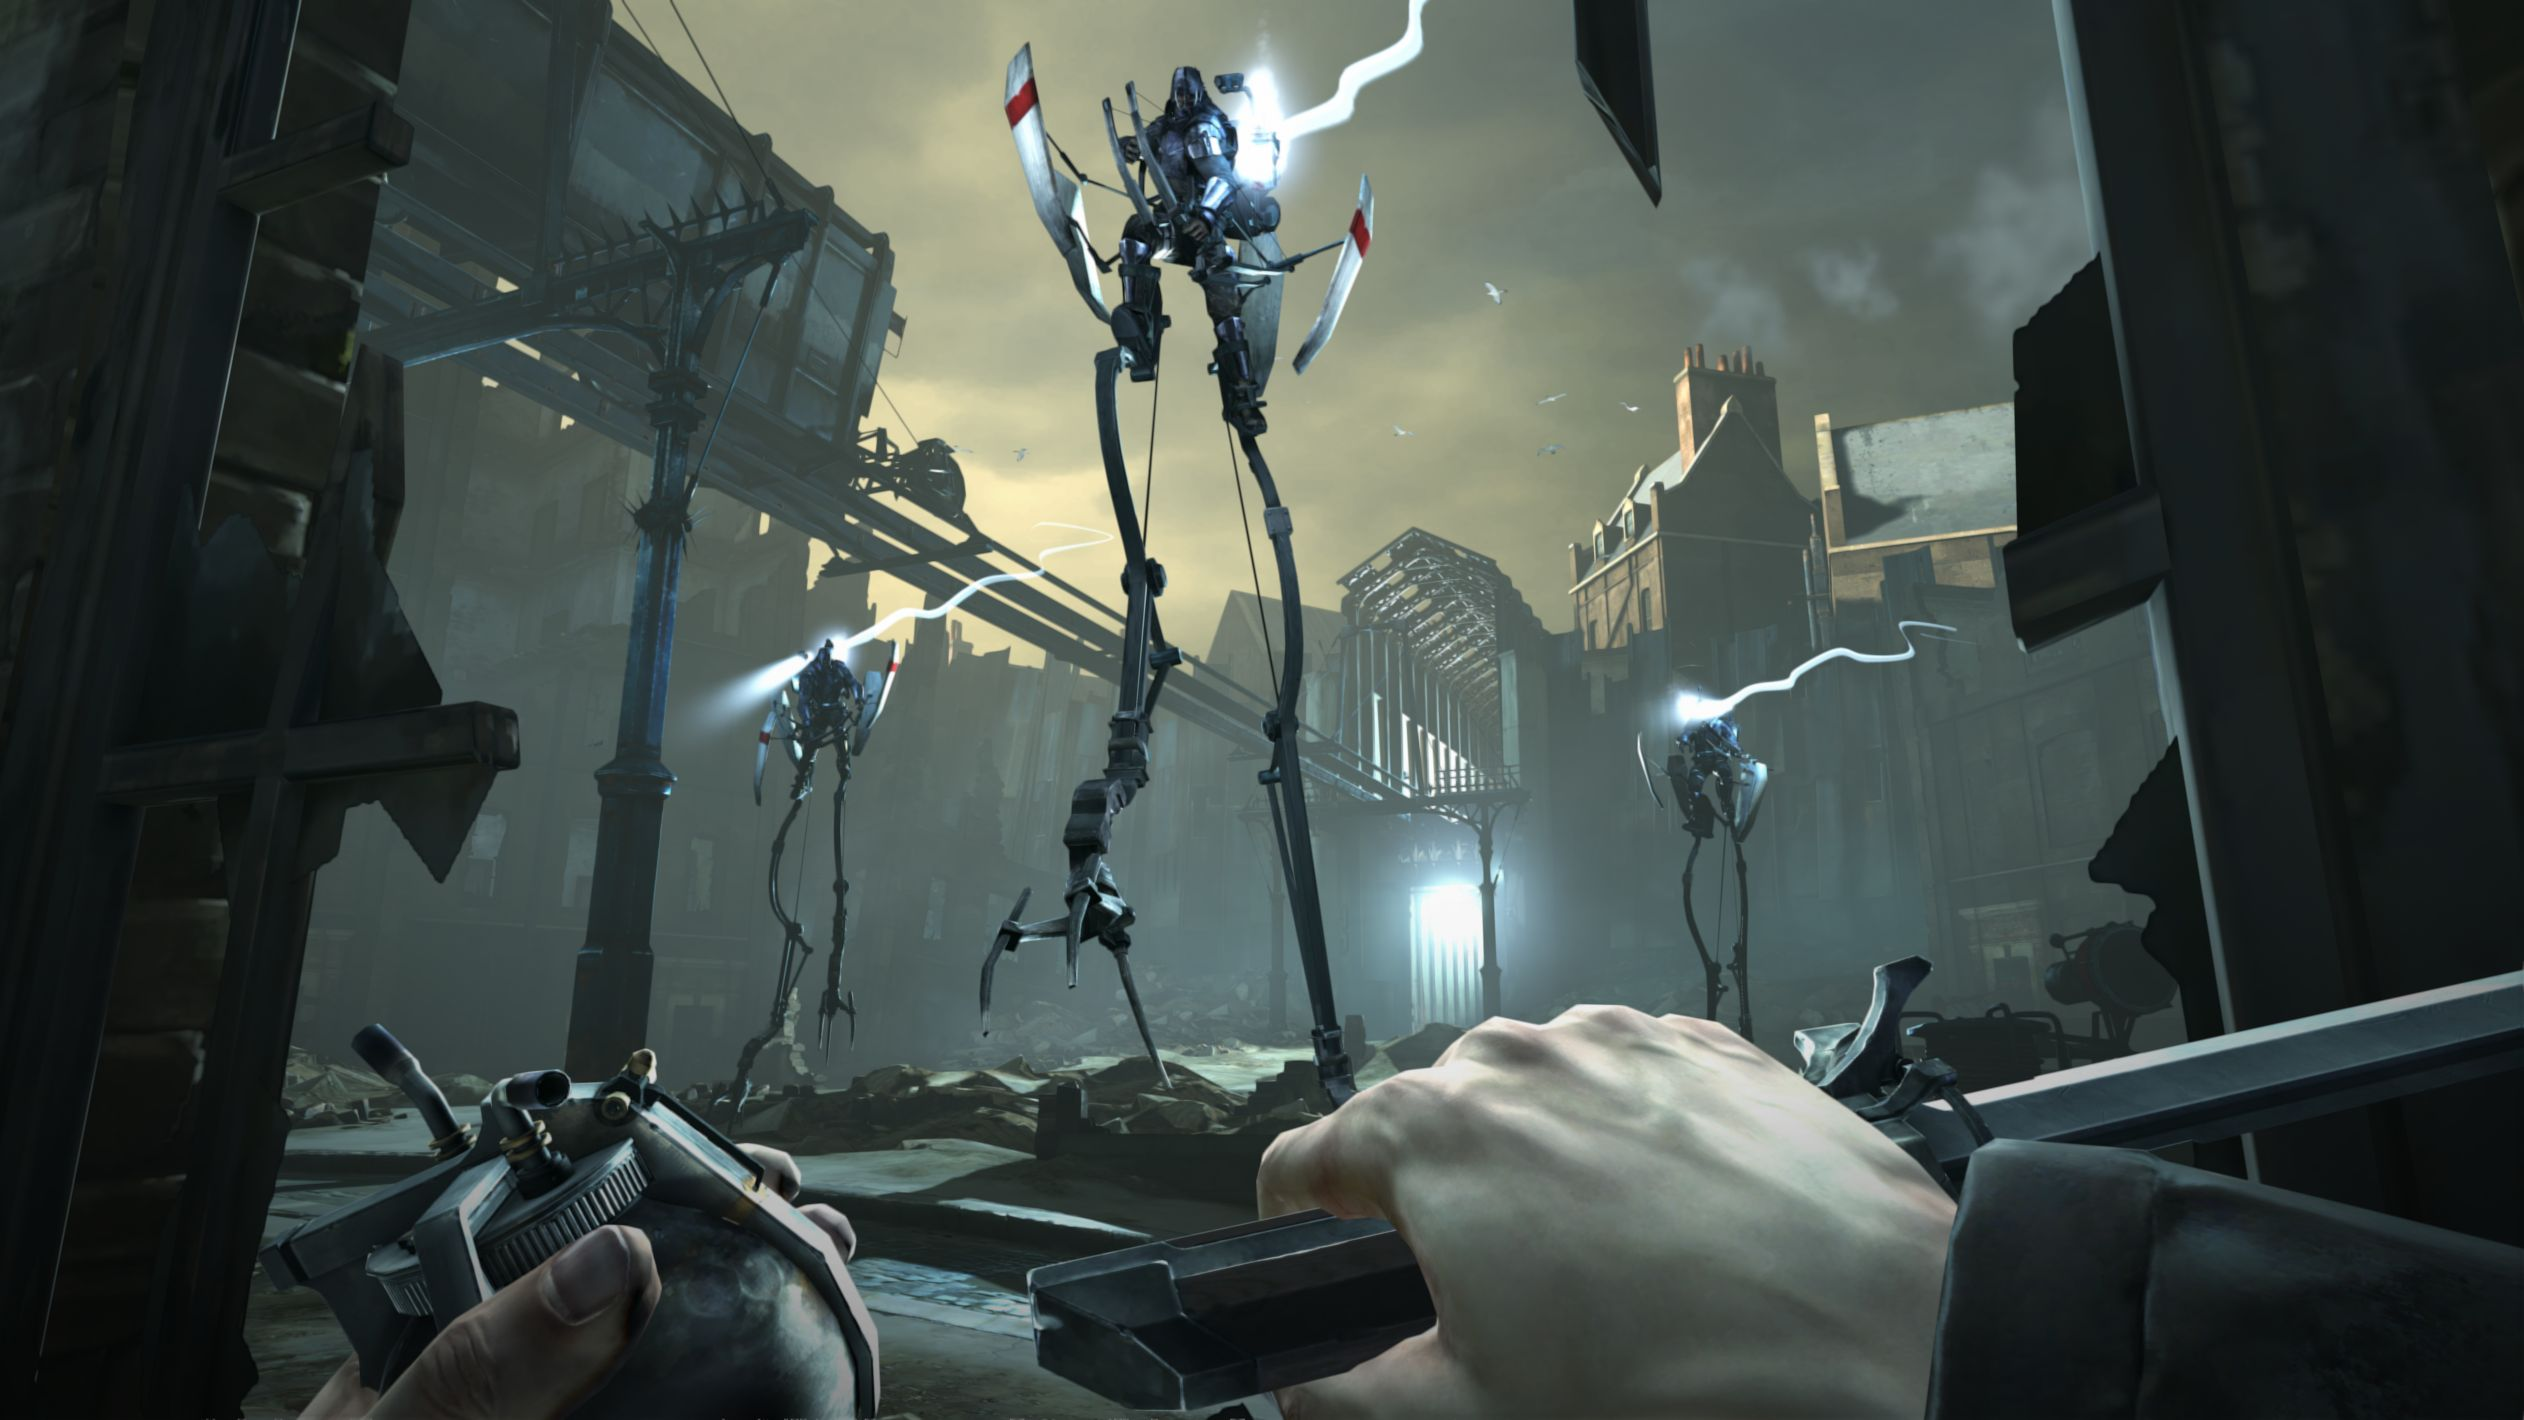 Dishonored: Definitive Edition (PS4) - mostly definitive